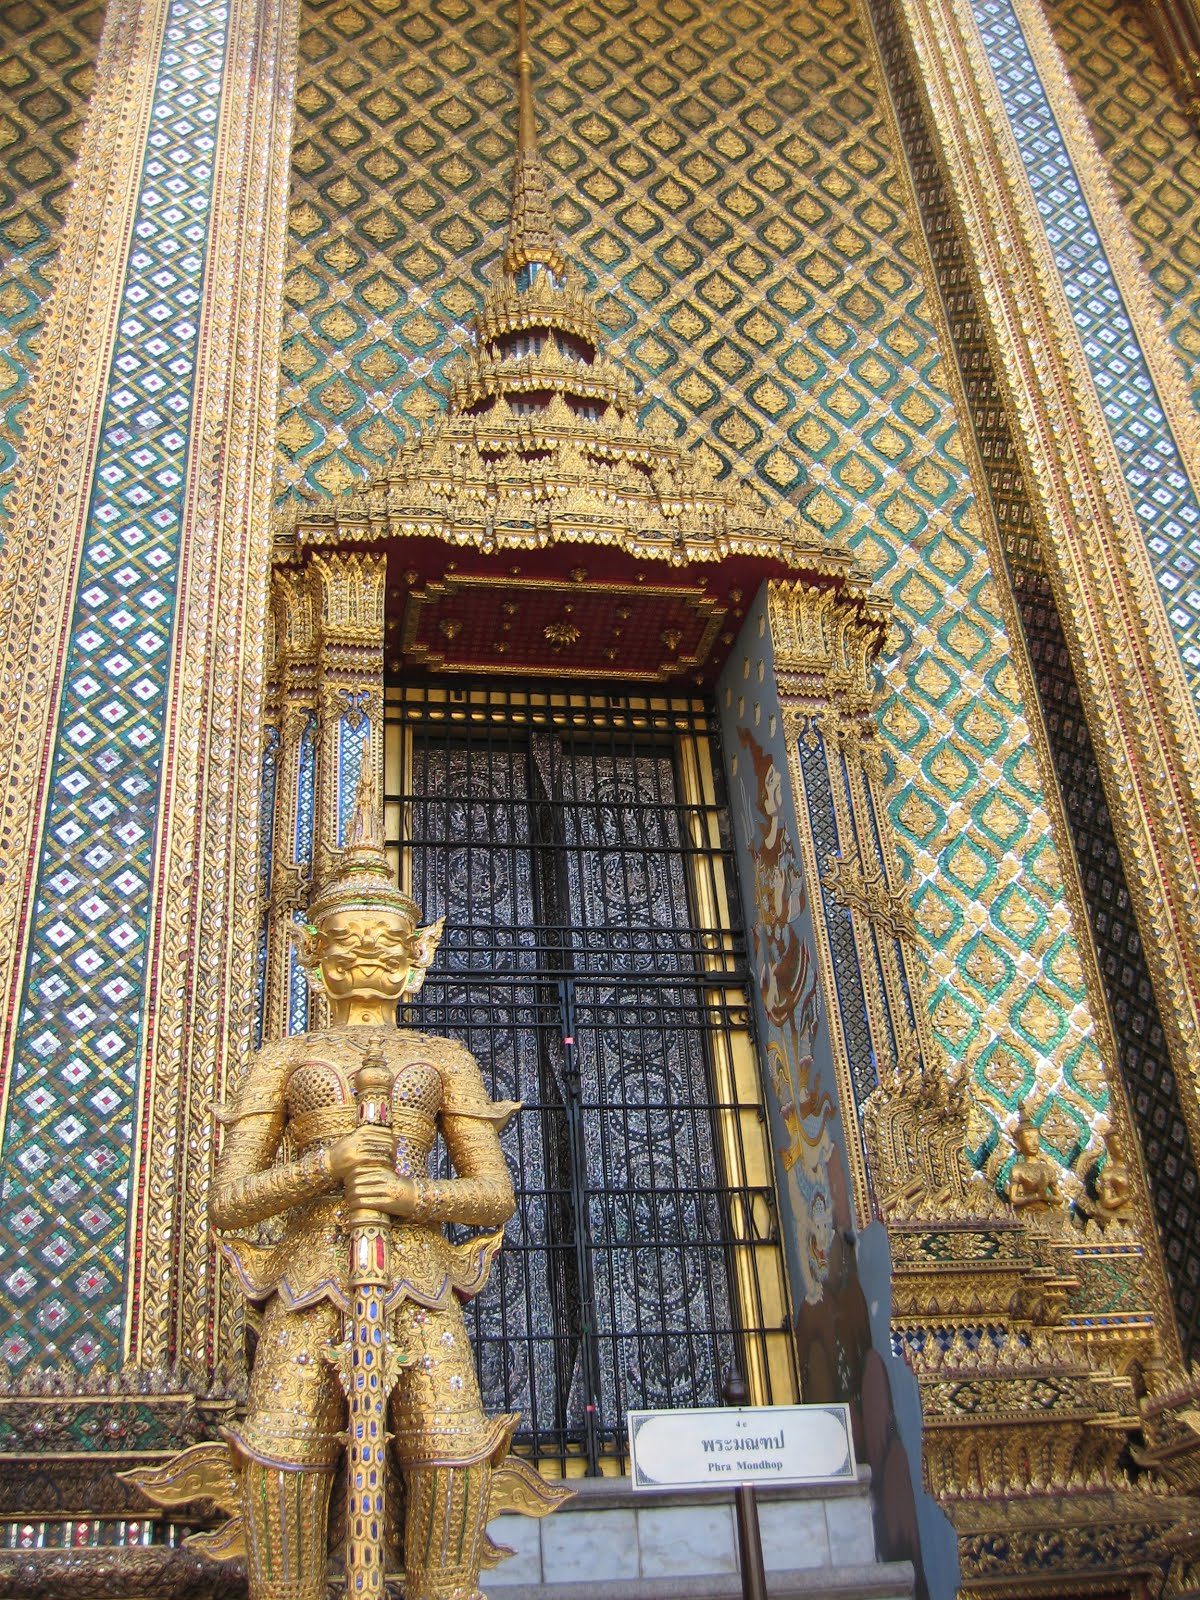 Gold details of the Grand Palace in Bangkok, Thailand